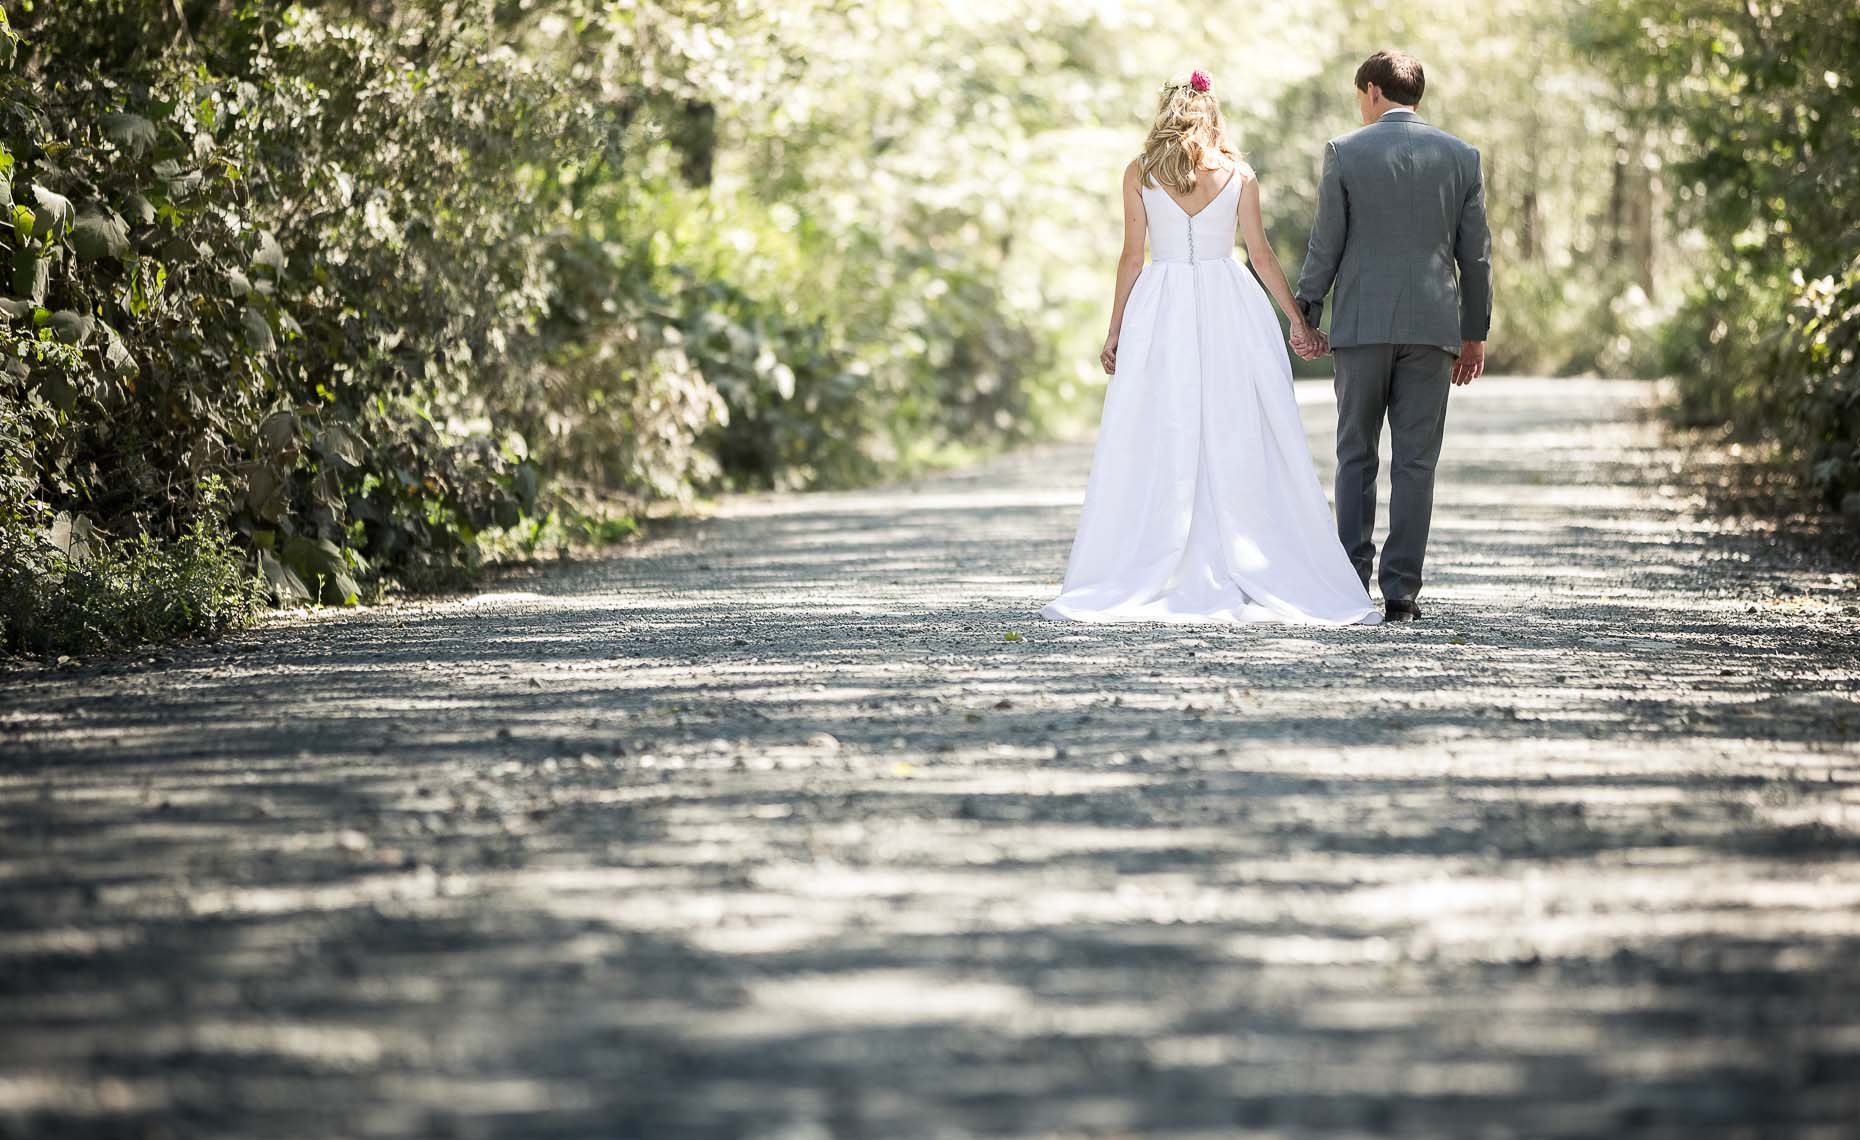 Bride and groom walk together at sunny whistler summer wedding